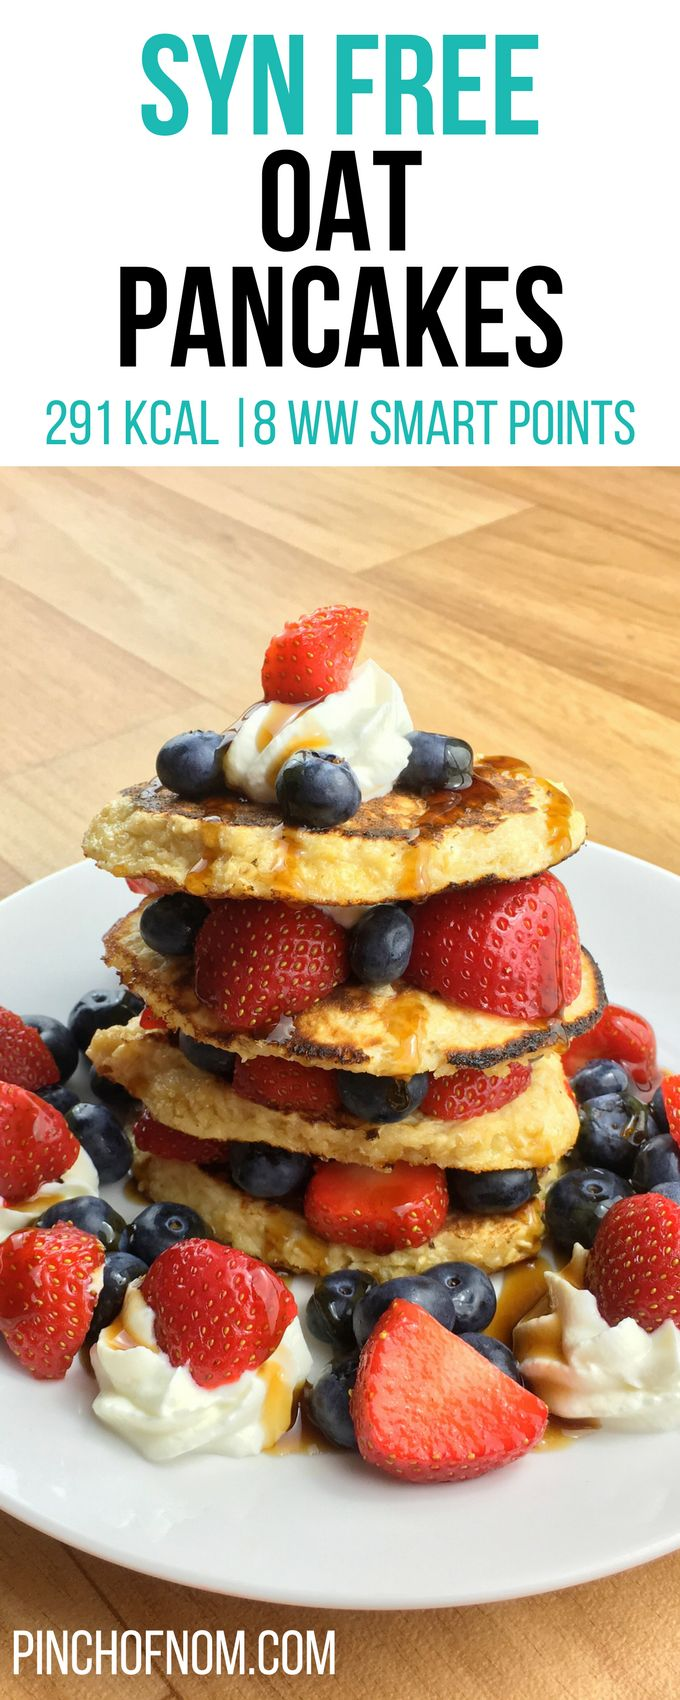 Syn Free Oat Pancakes | Pinch Of Nom Slimming World Recipes 291 kcal | Syn Free | 8 Weight Watchers Smart Points